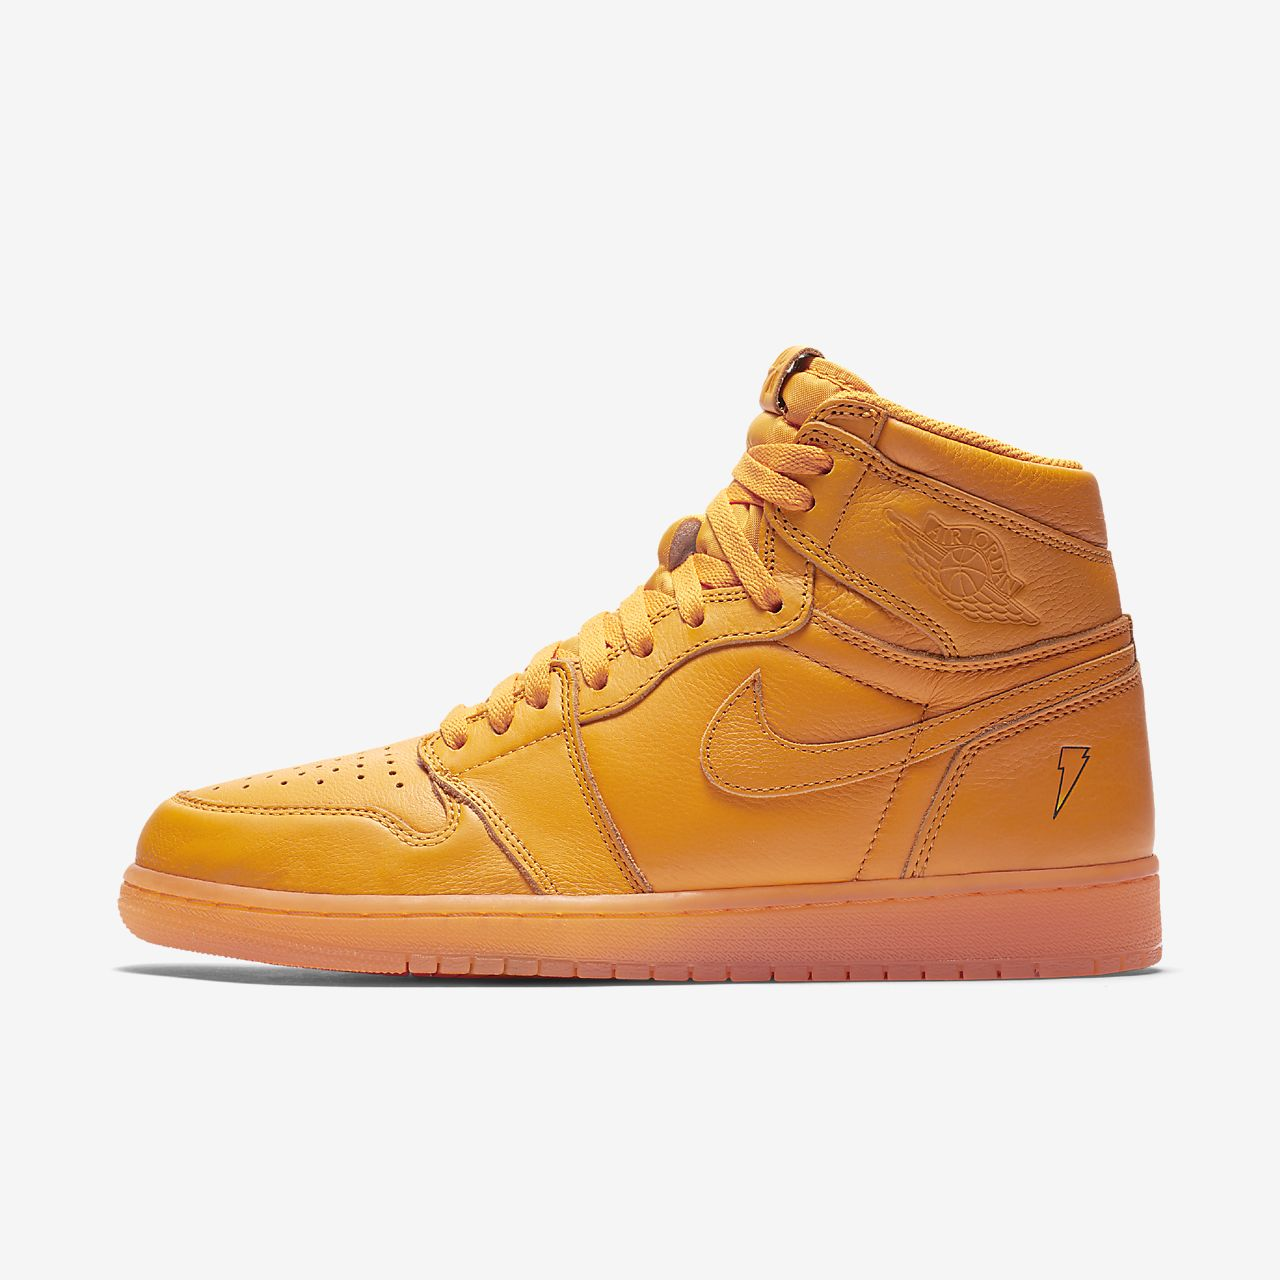 Chaussure Retro Be High Og 1 Pour Air » Orange Jordan « Homme qrWcfpt1qw